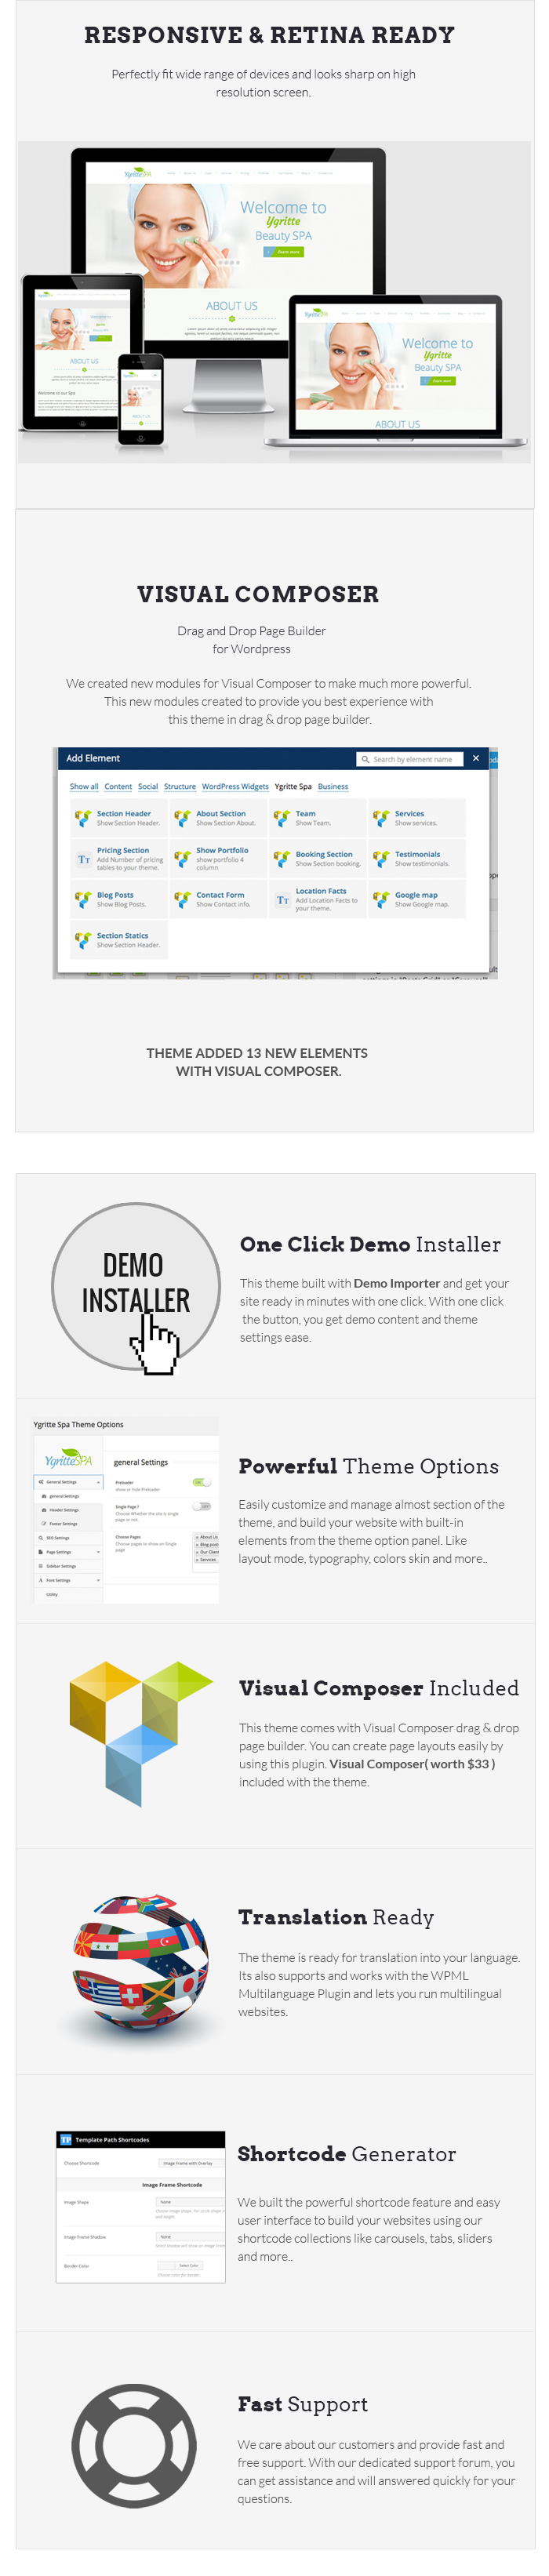 Ygritte Spa - Beauty Salon WordPress Theme